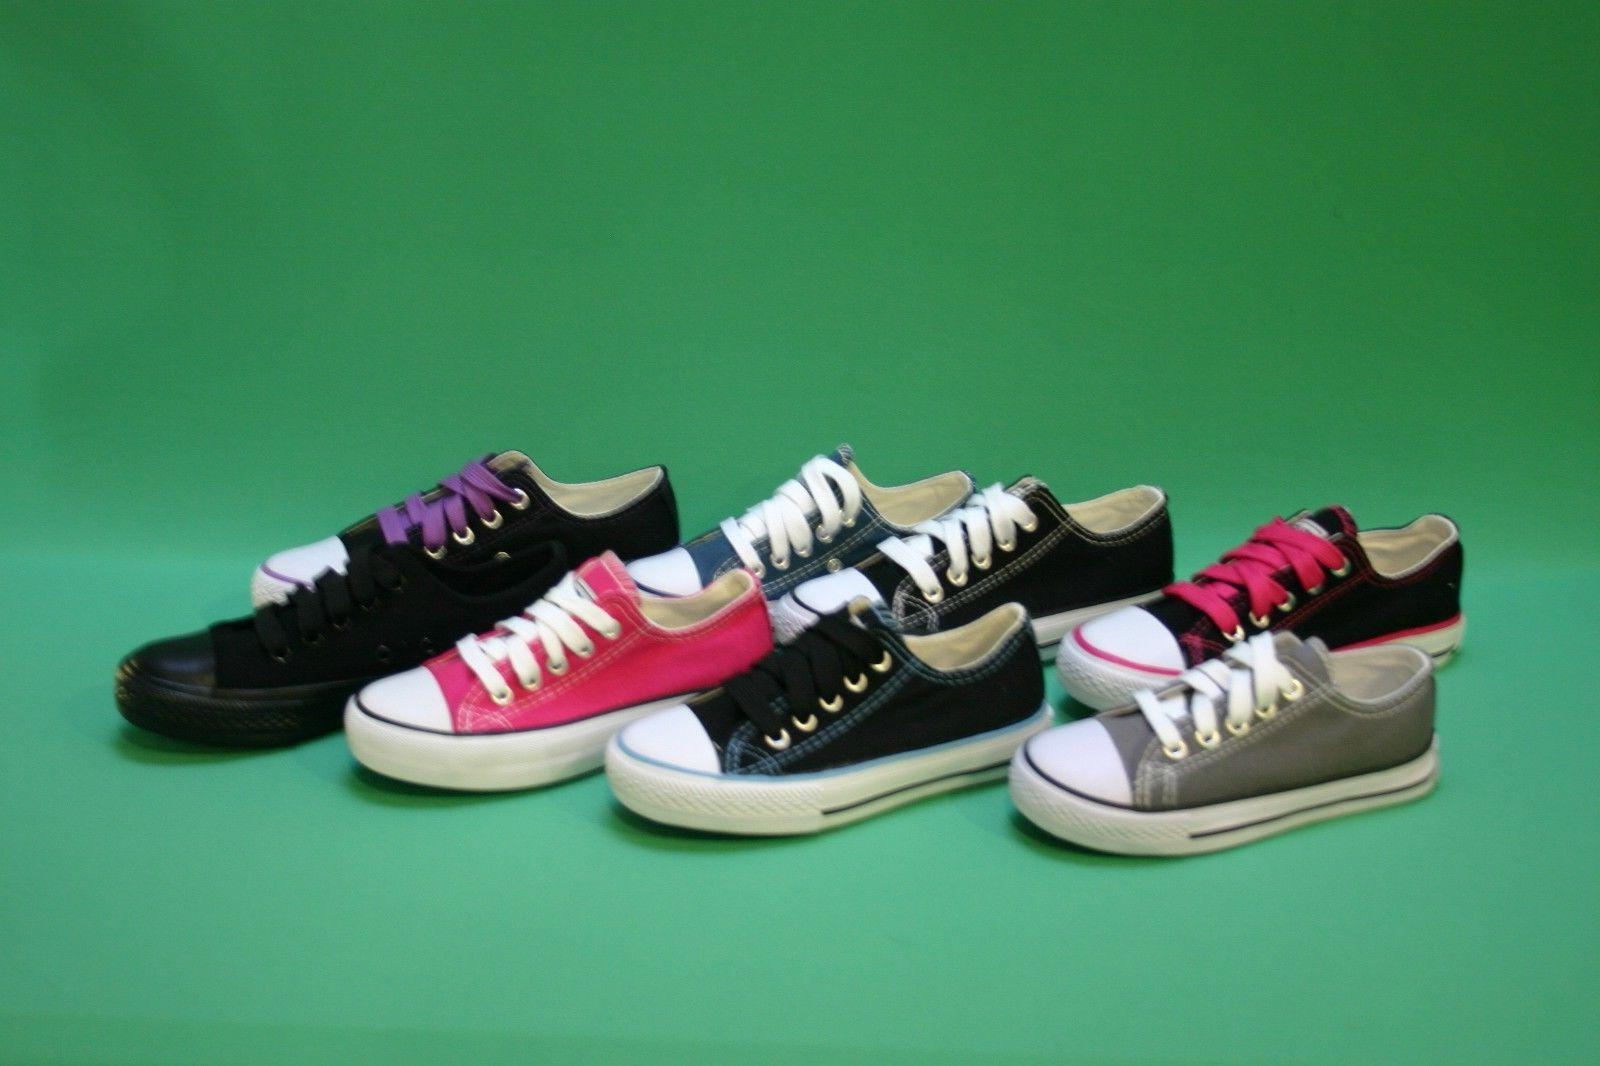 New Women Girls Canvas Sneakers Classic Lace Up Shoes Casual